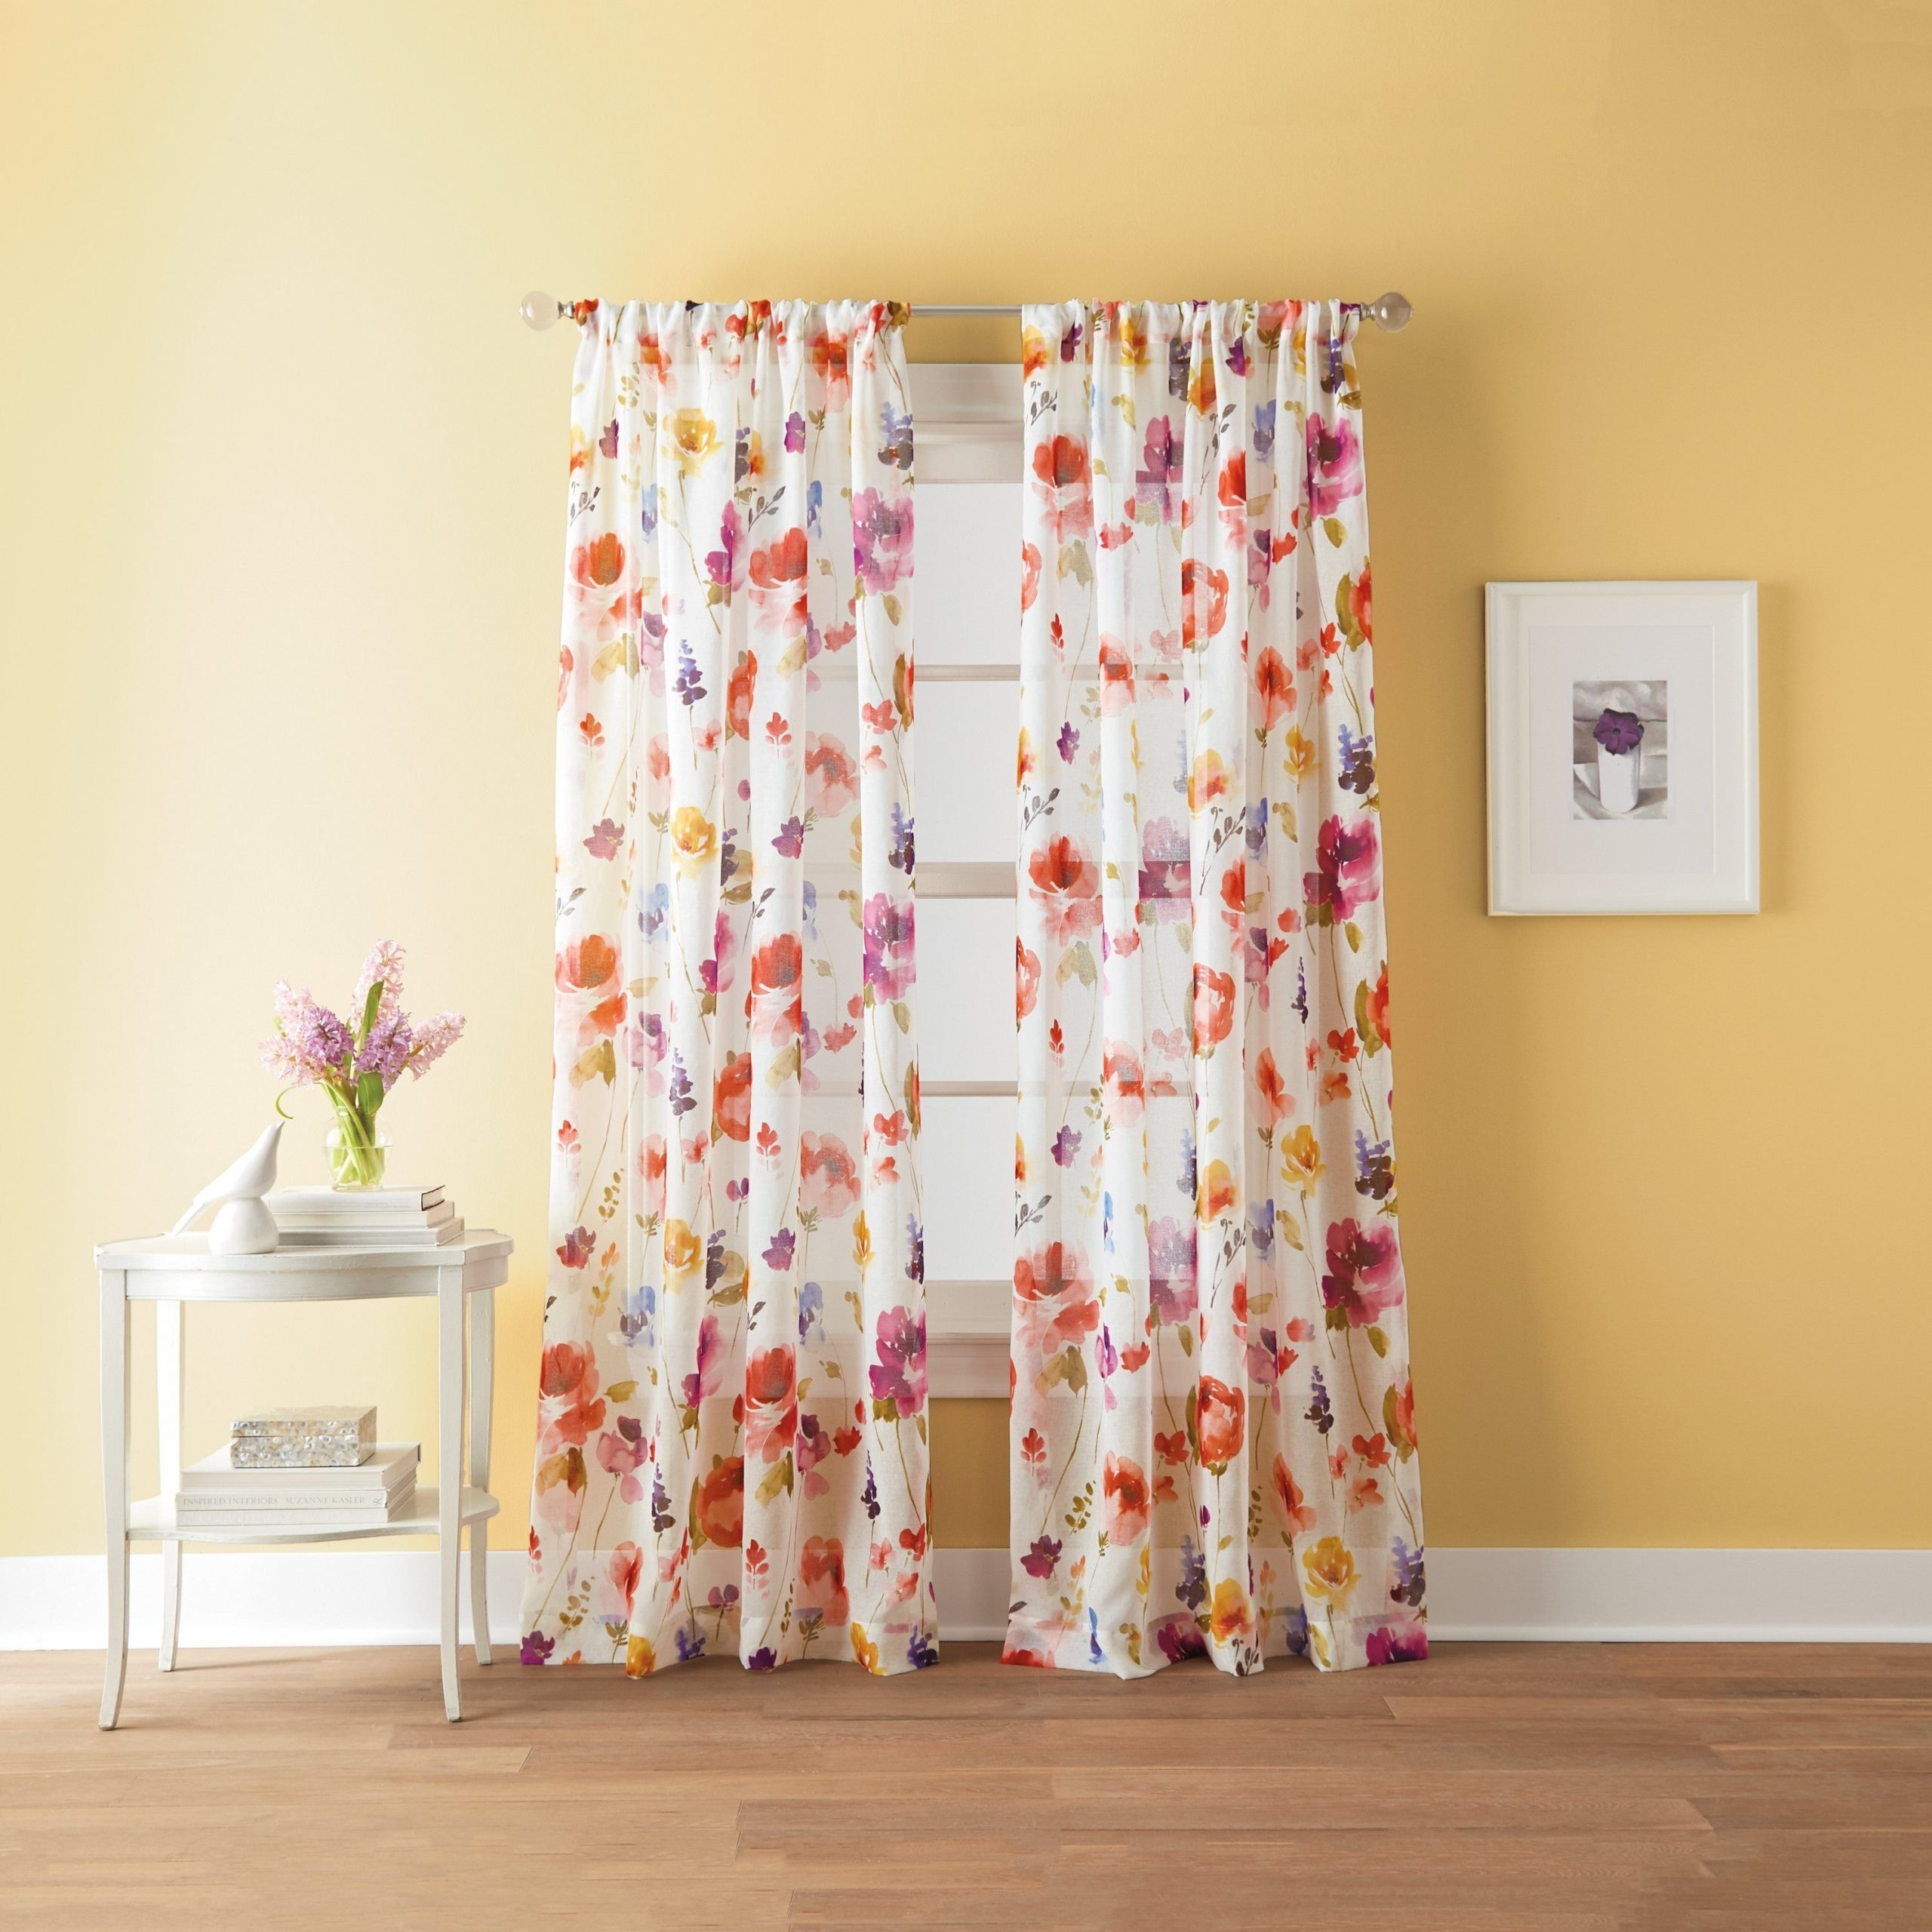 These Sheer Floral Curtains Are Made for Yellow Walls